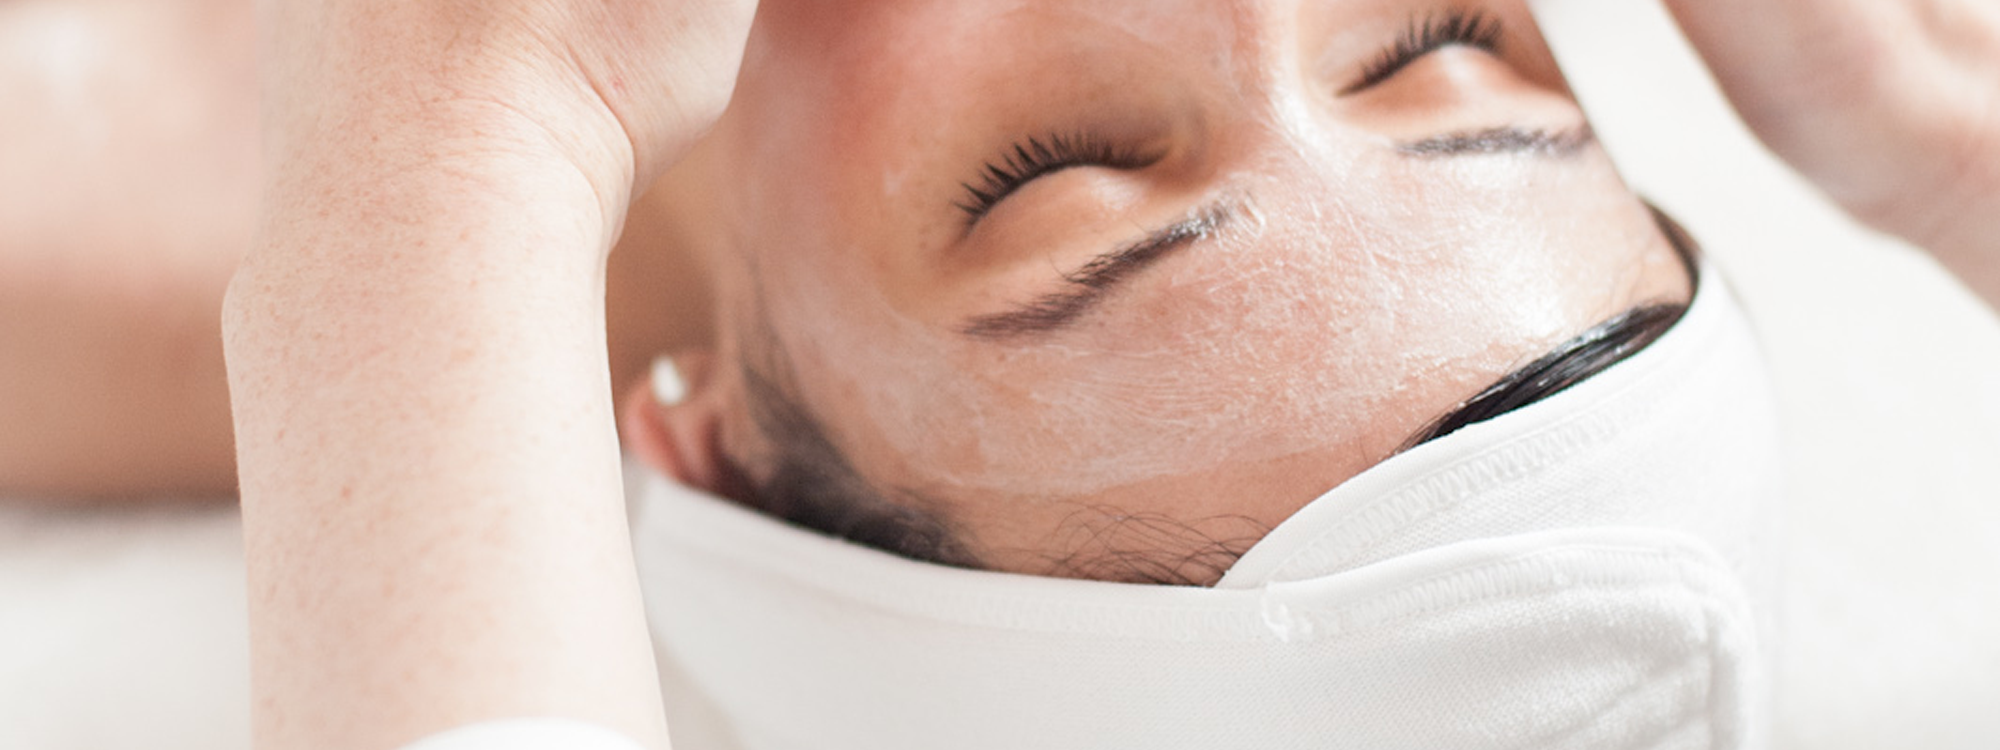 This tool will help rejuvenate your skin for several years